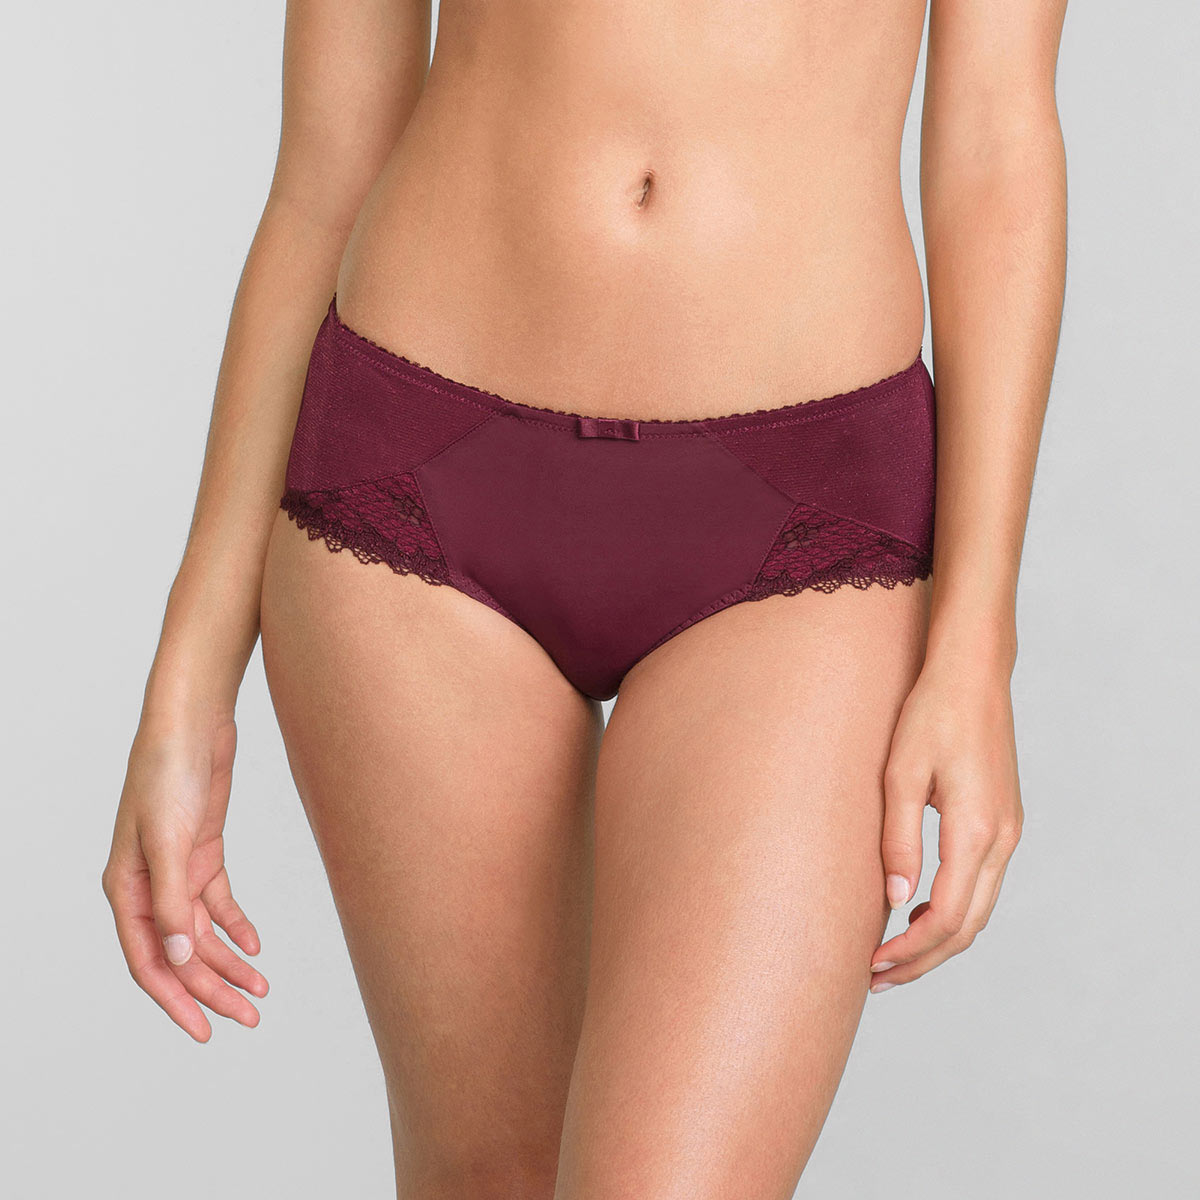 Midi Knickers in Dark Bordeaux Classic Lace Support, , PLAYTEX